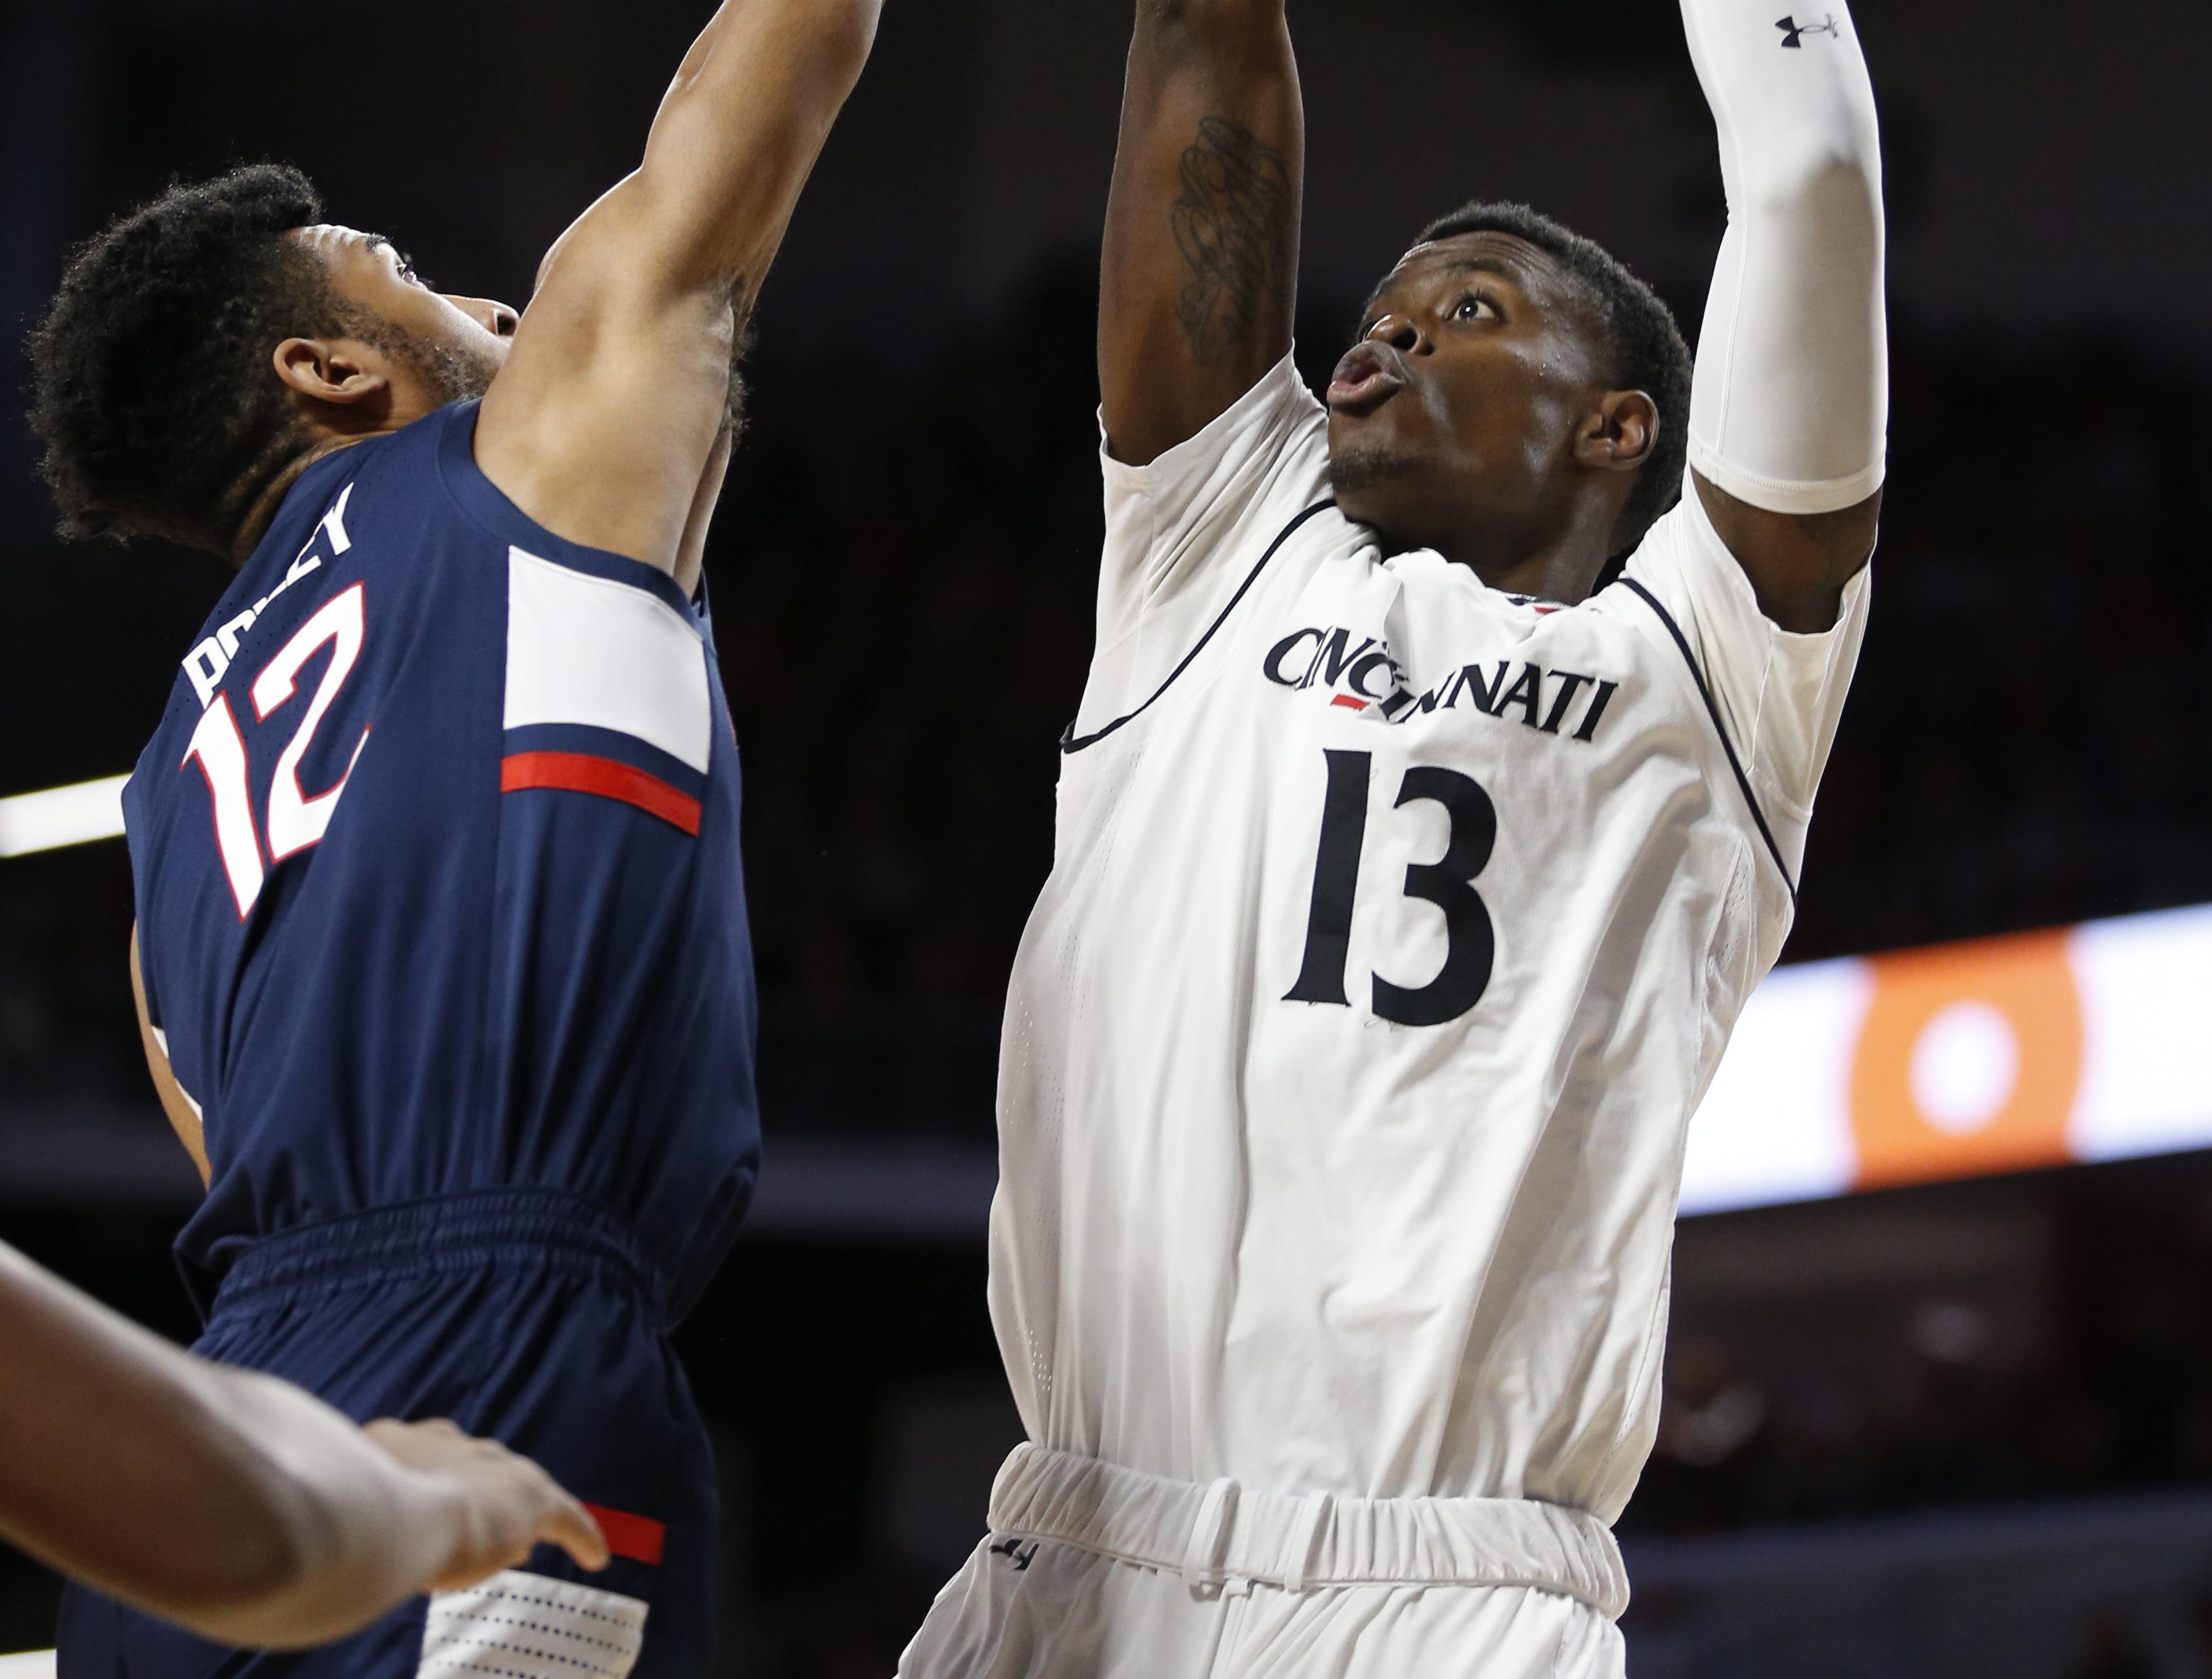 Cincinnati Bearcats forward Tre Scott (13) shoots over Connecticut Huskies forward Tyler Polley (12) during the first half of a basketball game Saturday, Jan. 12, 2019 in Cincinnati. (Photo by Gary Landers for the Enquirer)